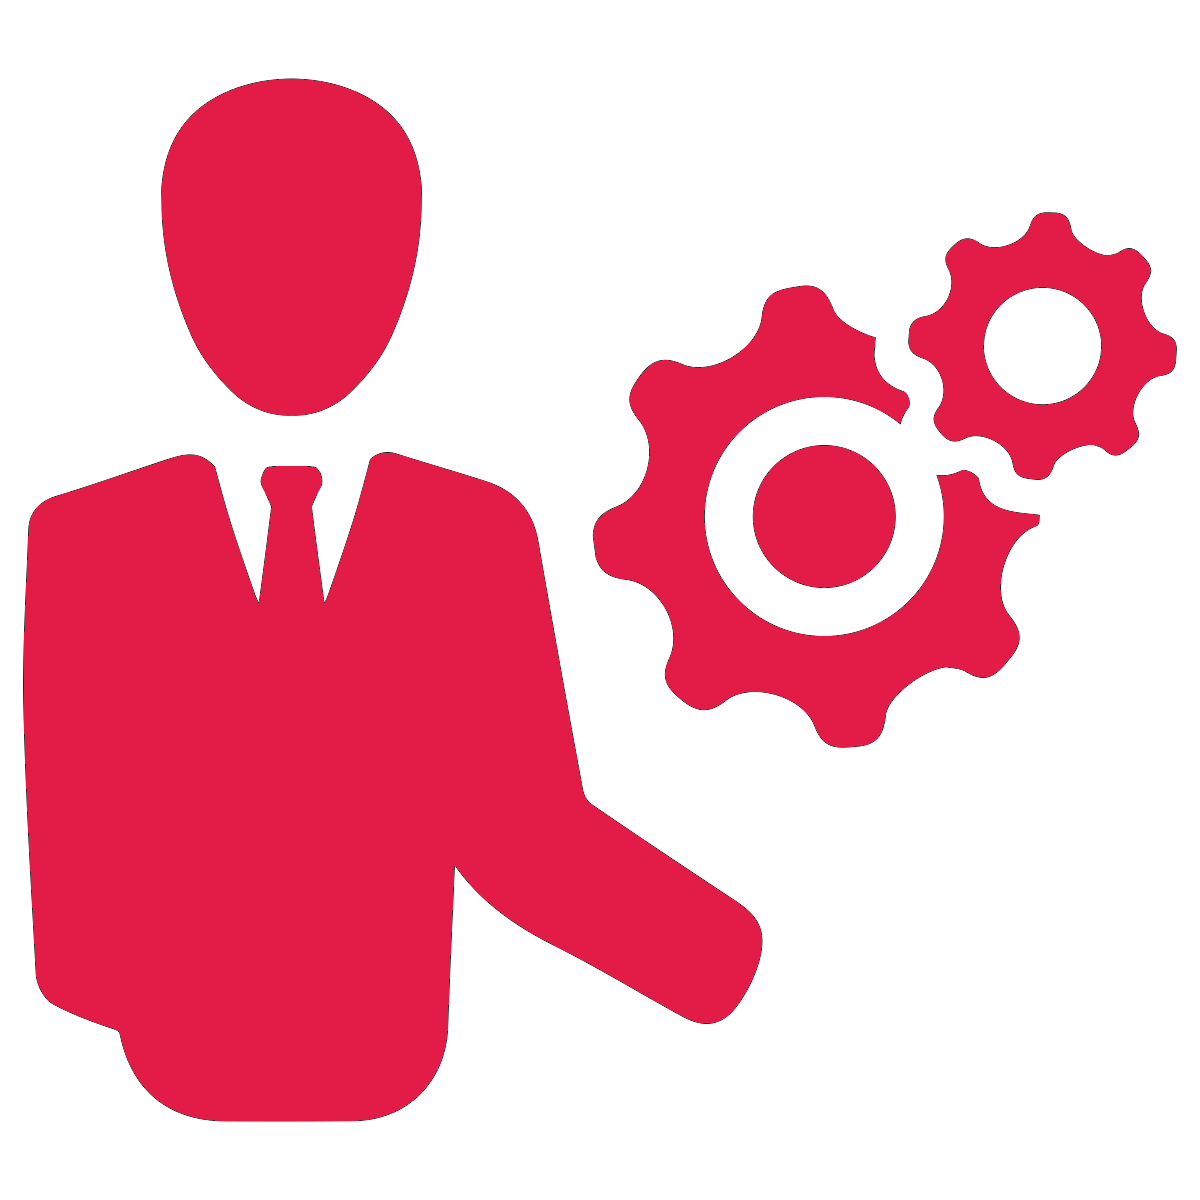 Manager clipart operation manager. Fpr icon red it